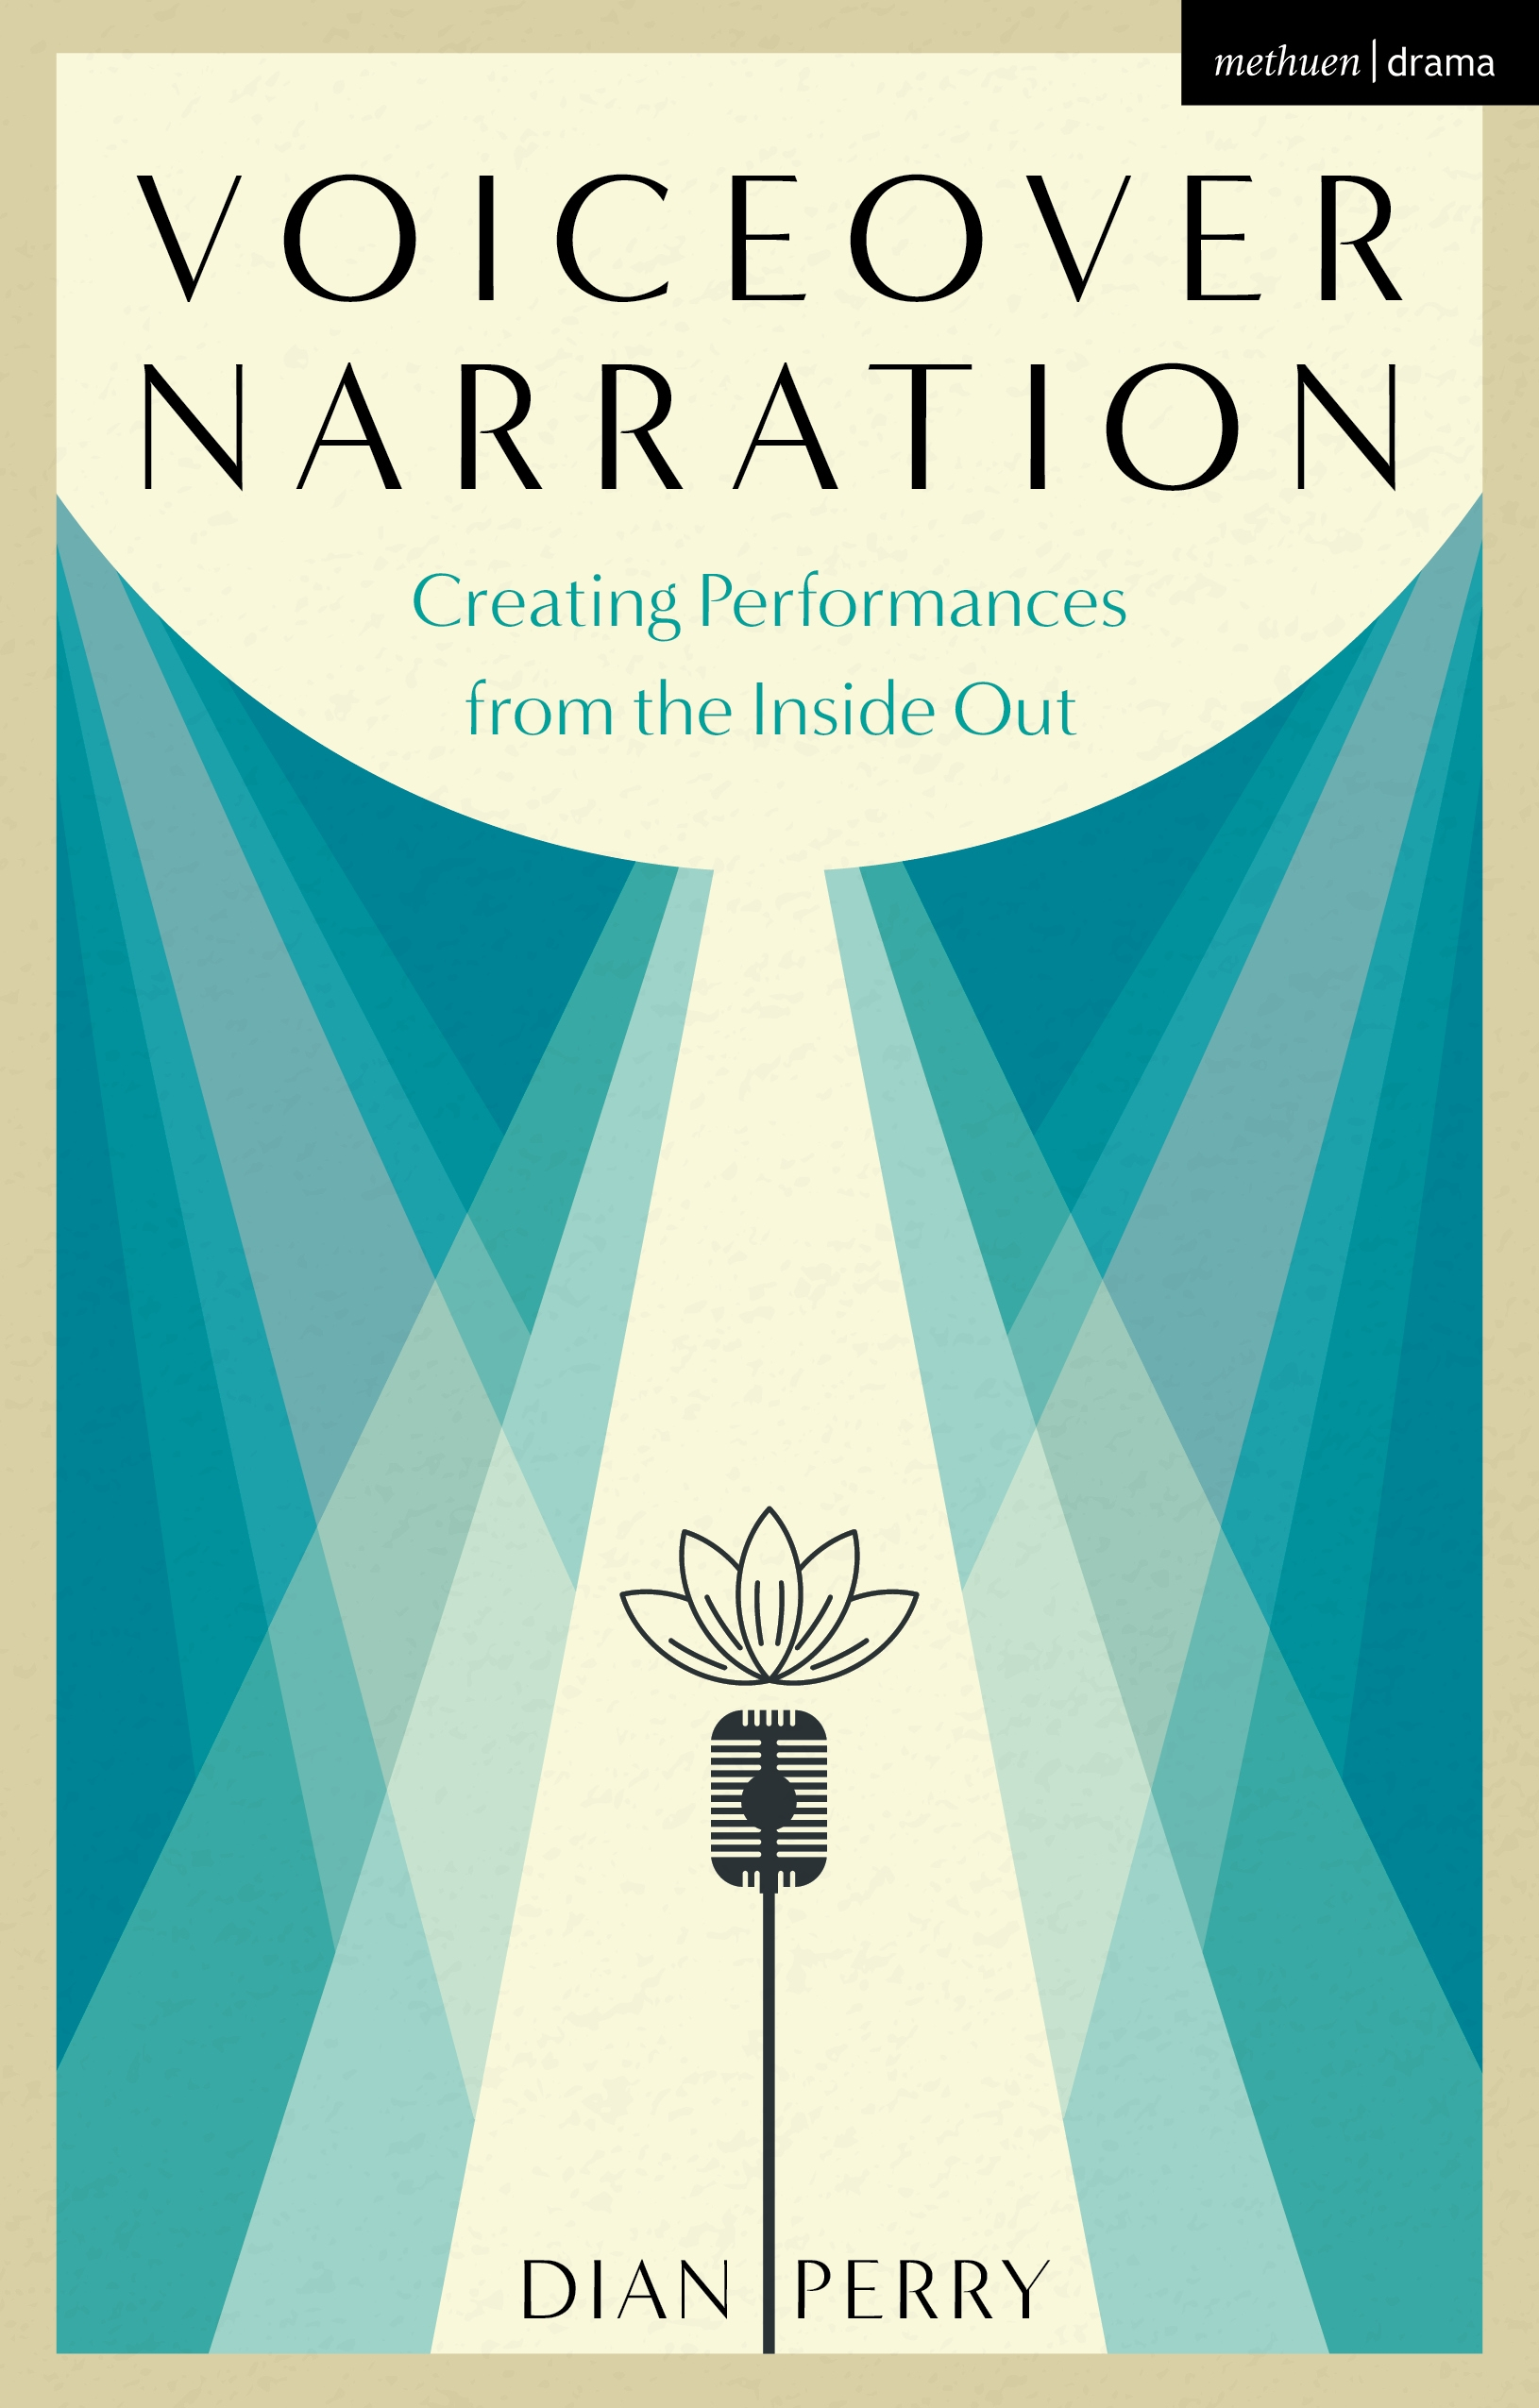 Voiceover Narration: Creating Performances from the Inside Out